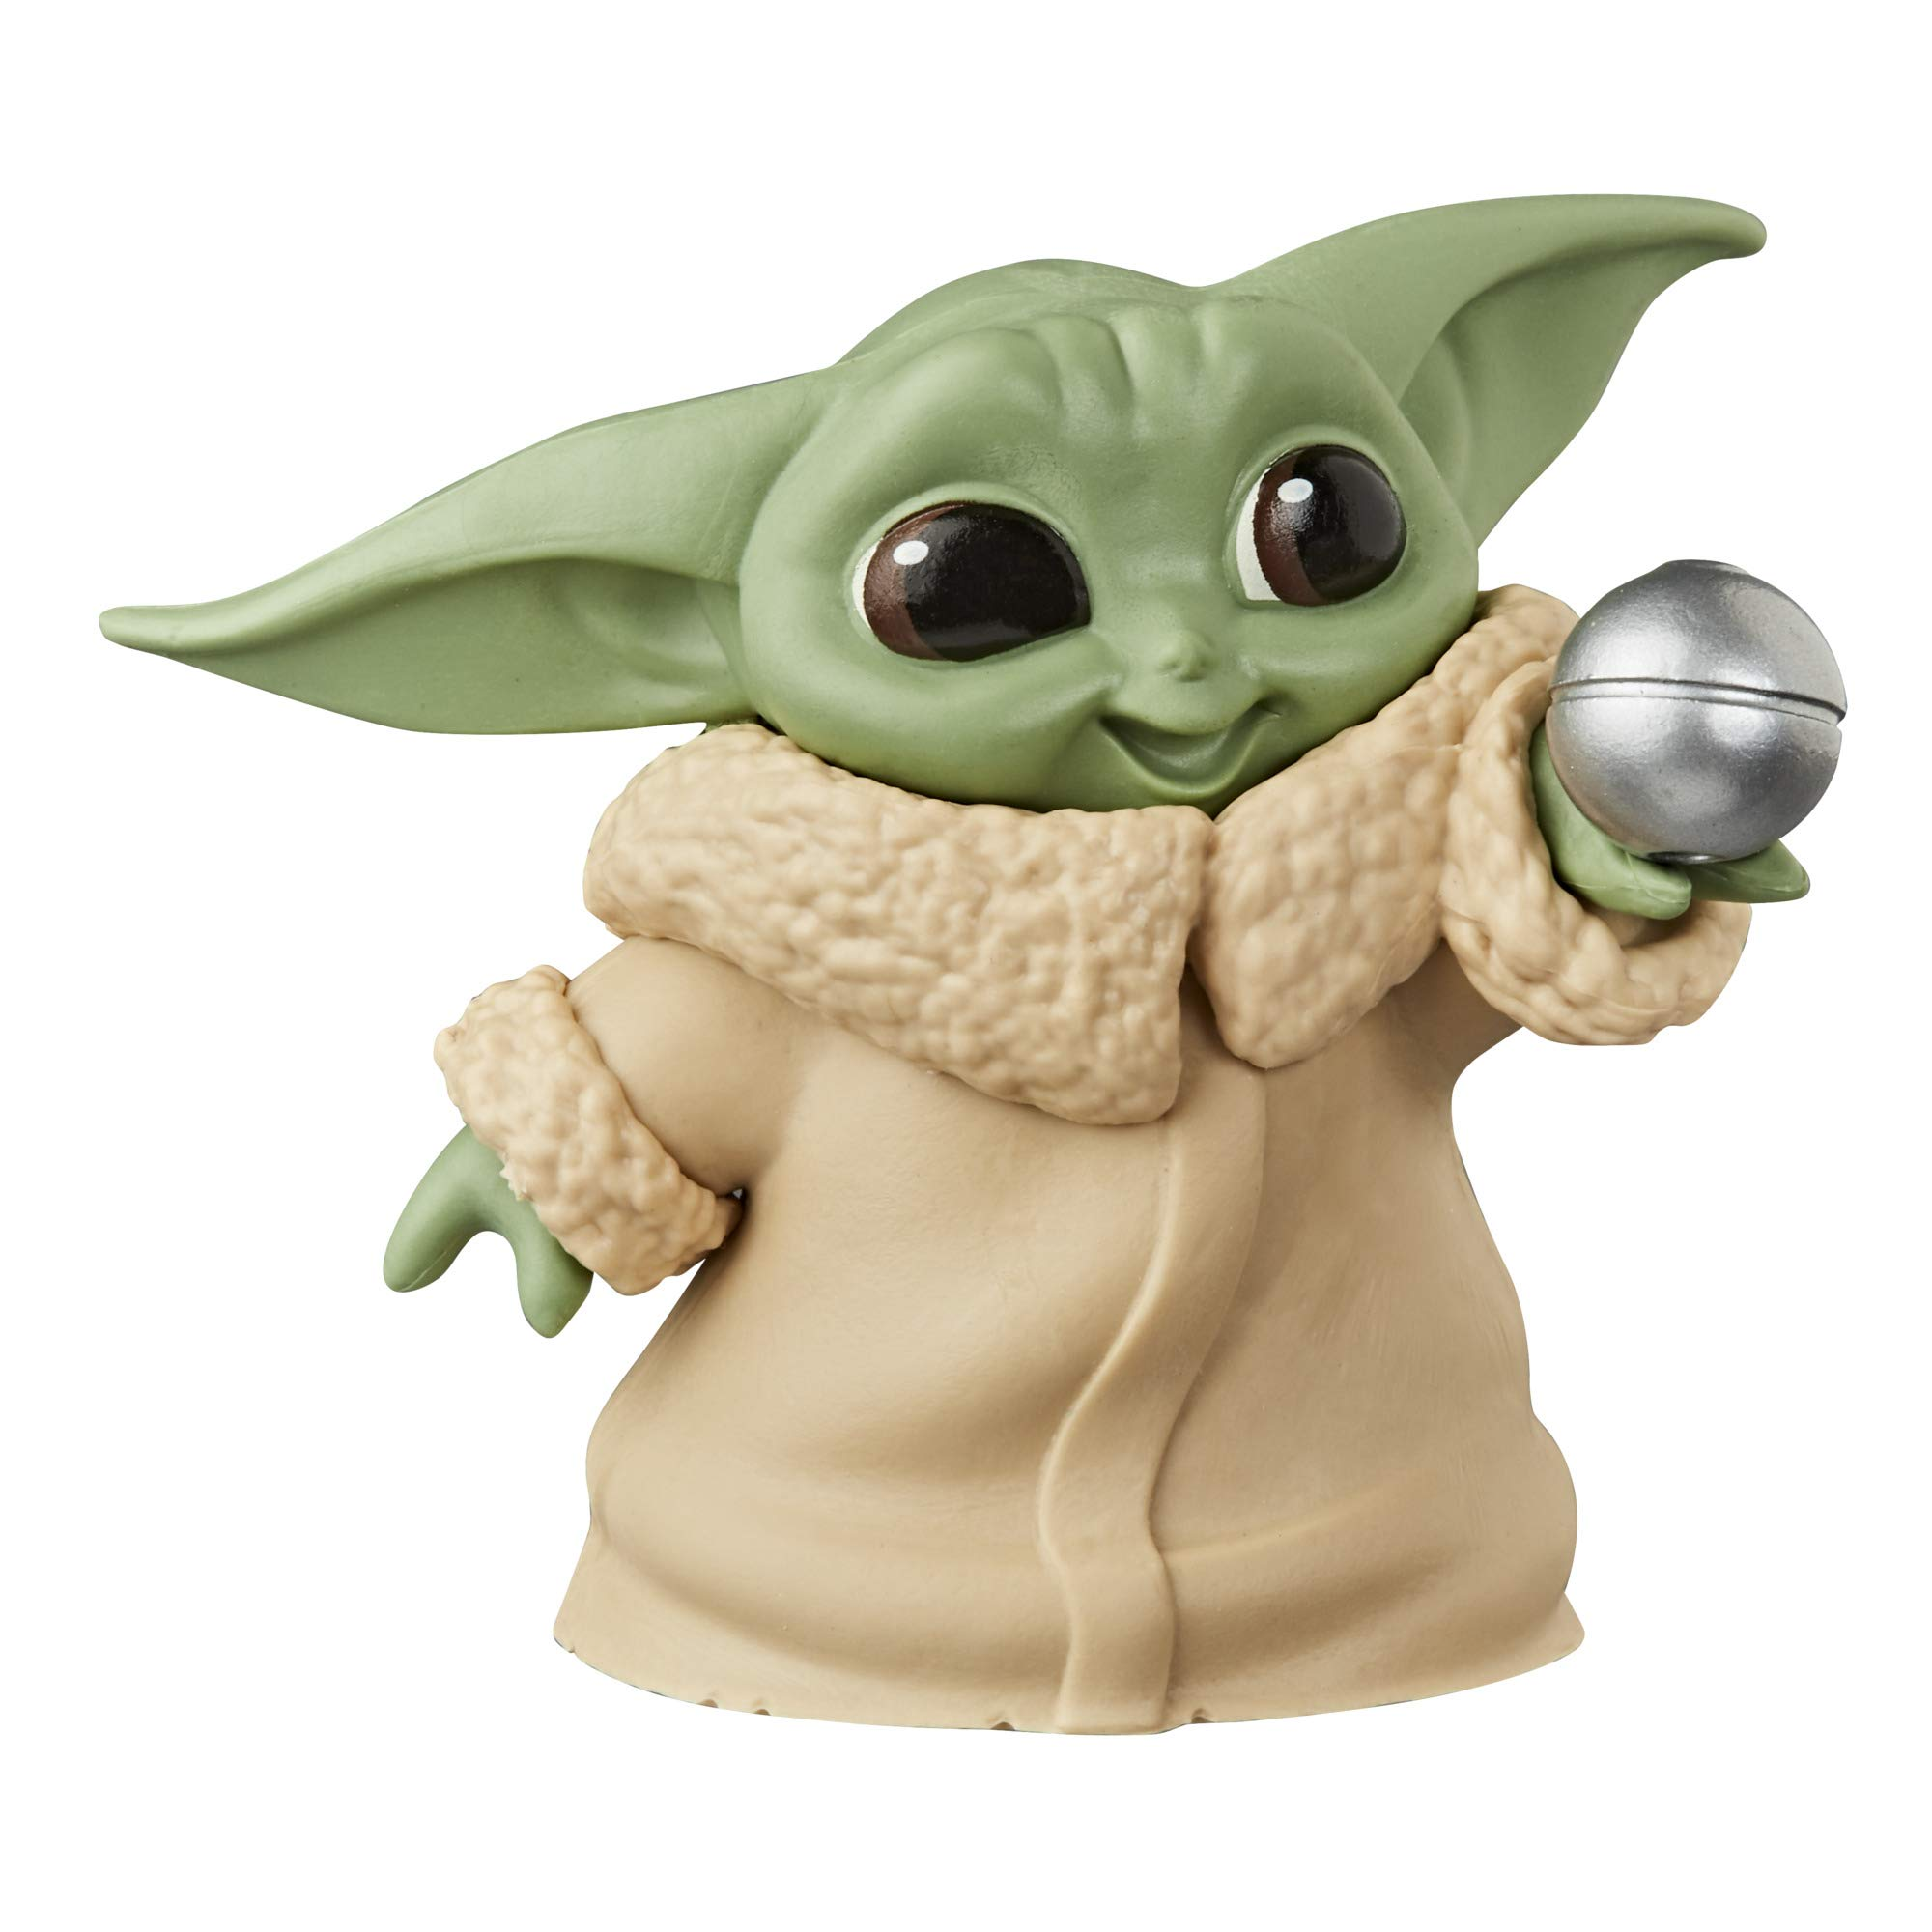 Star Wars Mandalorian The Child Bounty Collection Hold Me Baby Yoda Figure for sale online